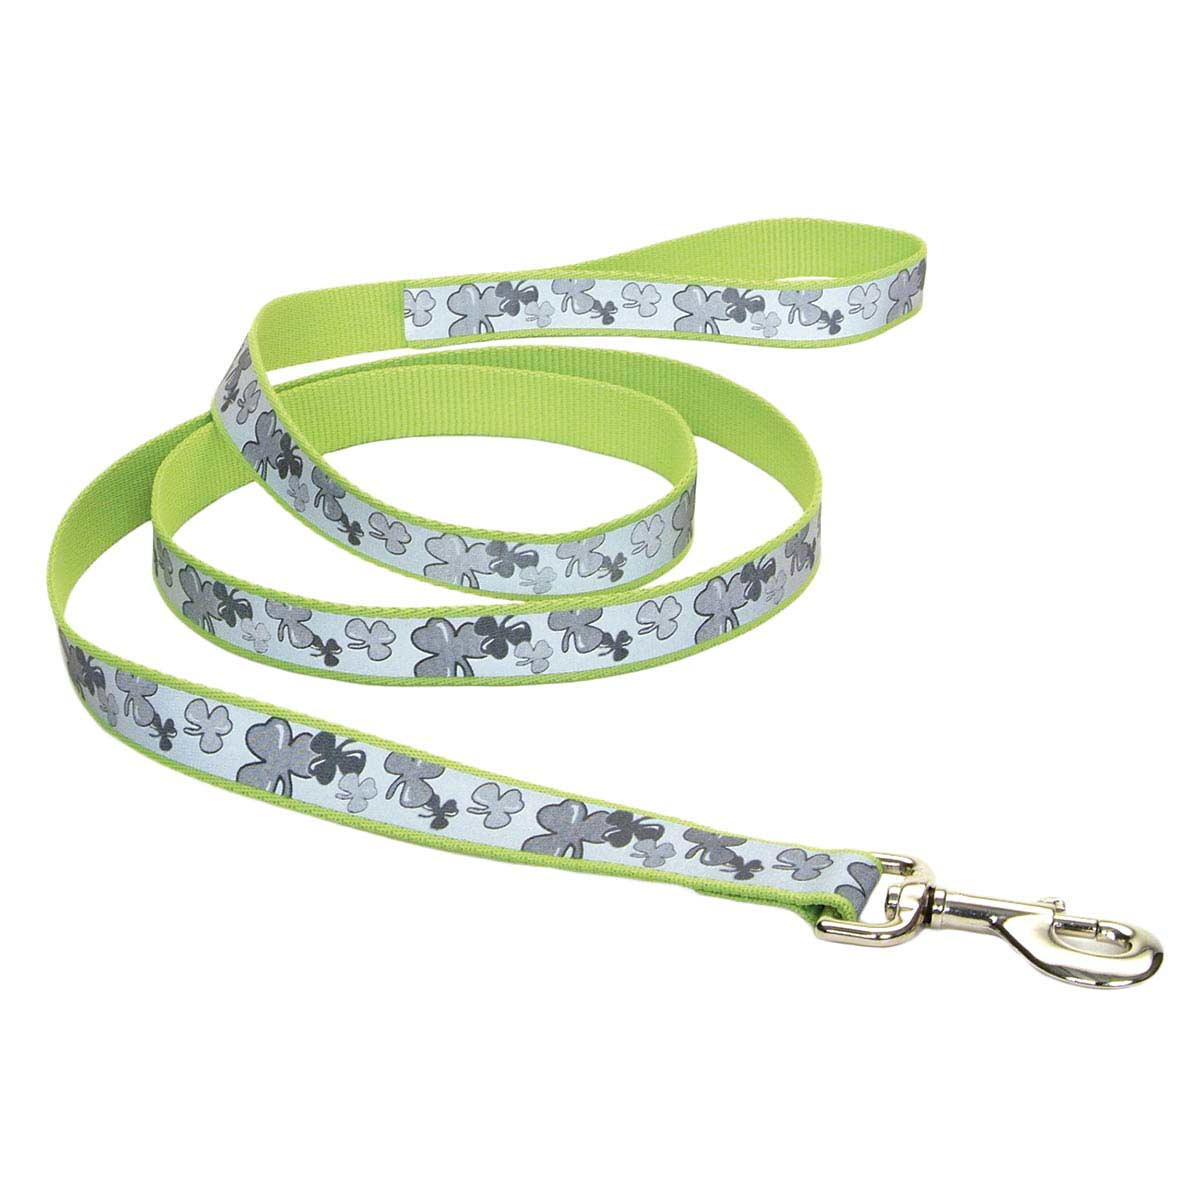 4 feet long - Coastal Lazer Brite Green Reflective Dog Leash - Shamrock Pattern - 1 in wide